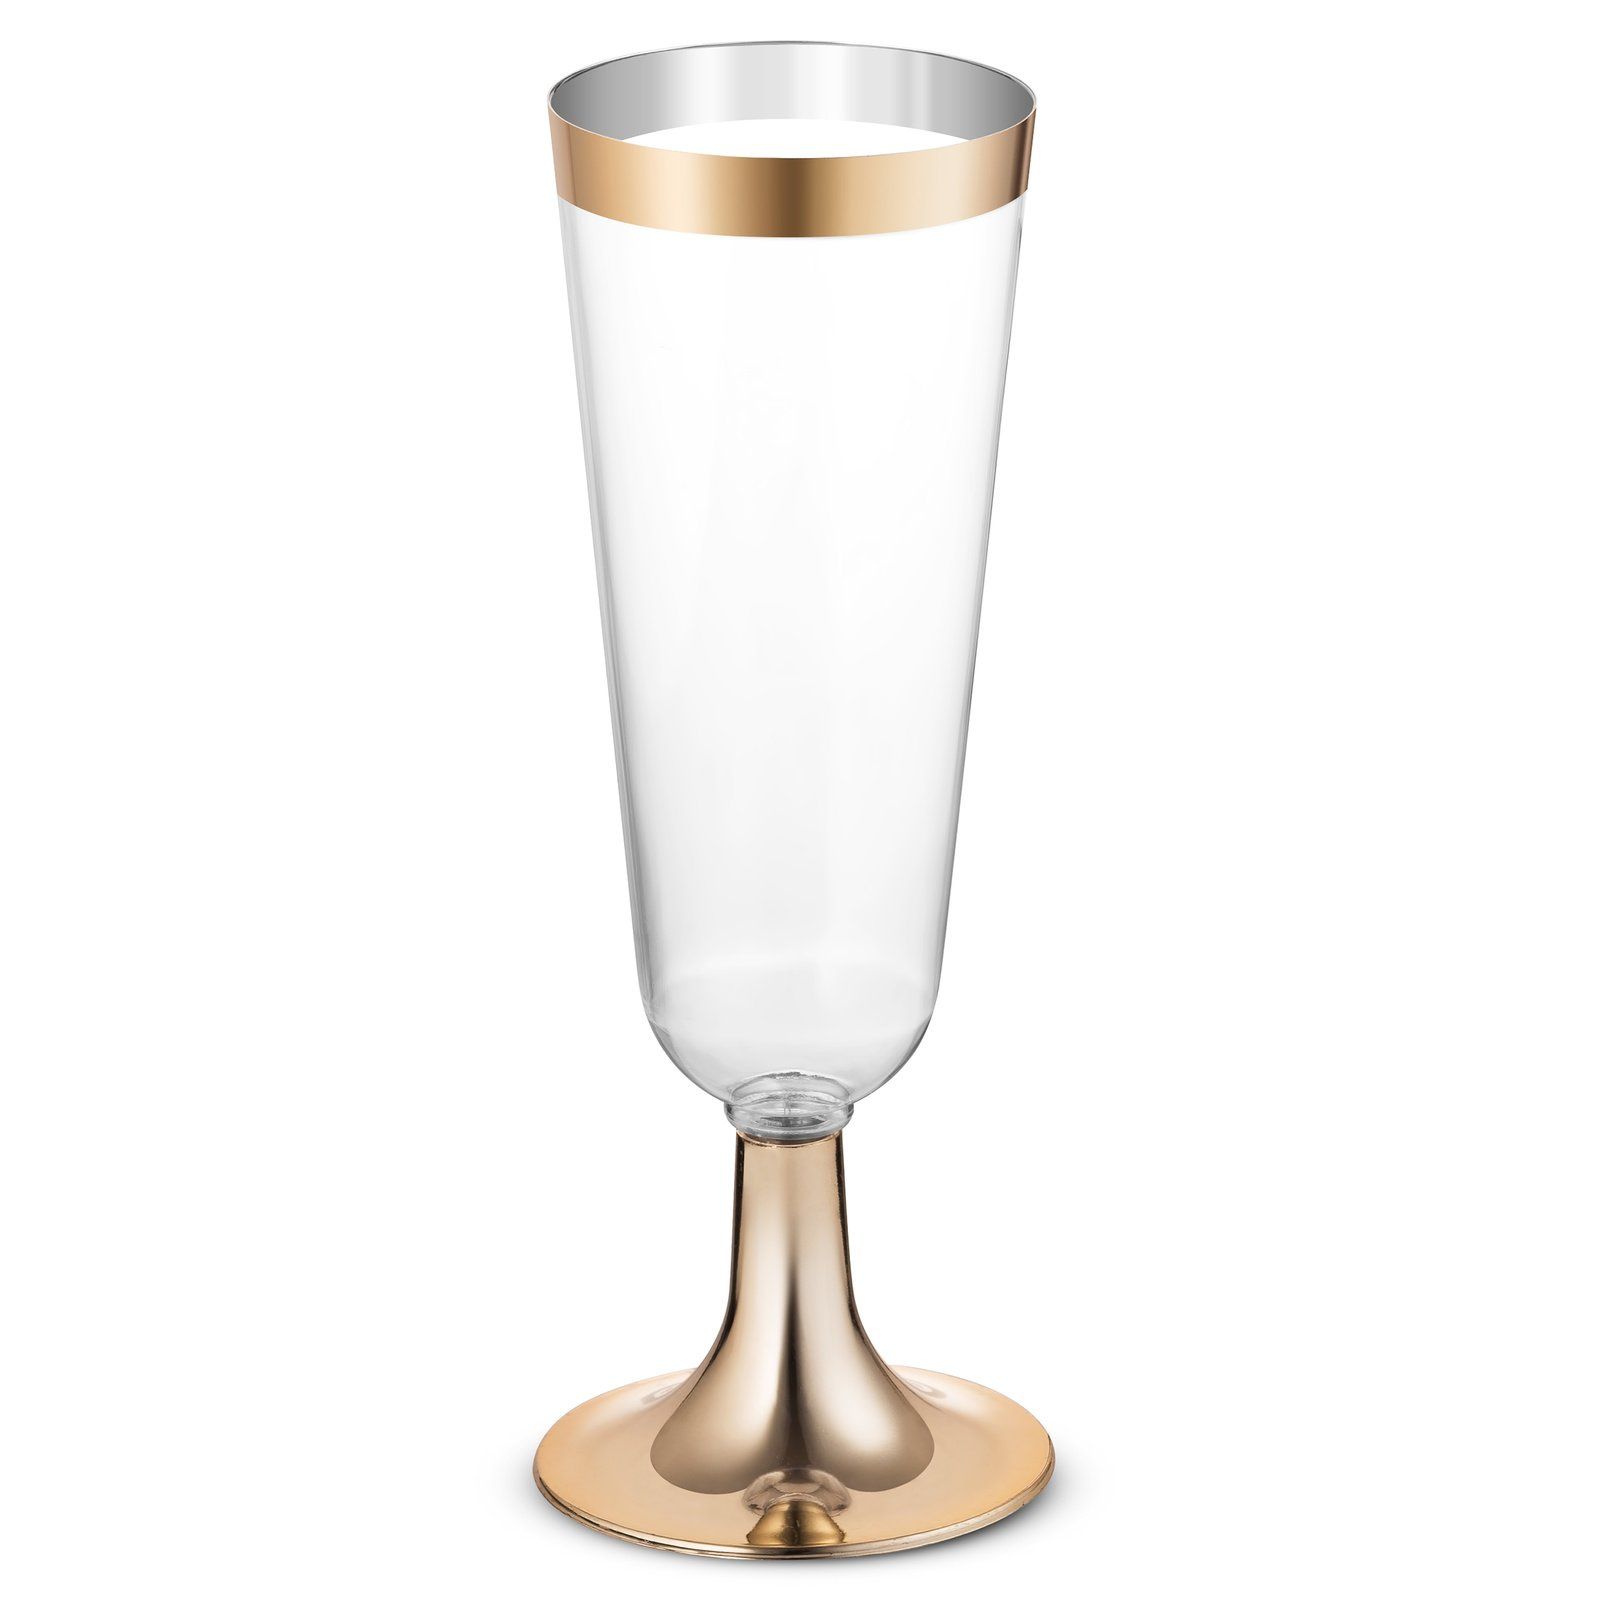 50 Plastic Gold Rimmed Champagne Flutes   5.5 oz. Clear Hard Disposable Party & Wedding Glass   Premium Heavy Duty Fancy Cup (50-Pack) by BloominGoods by BloominGoods